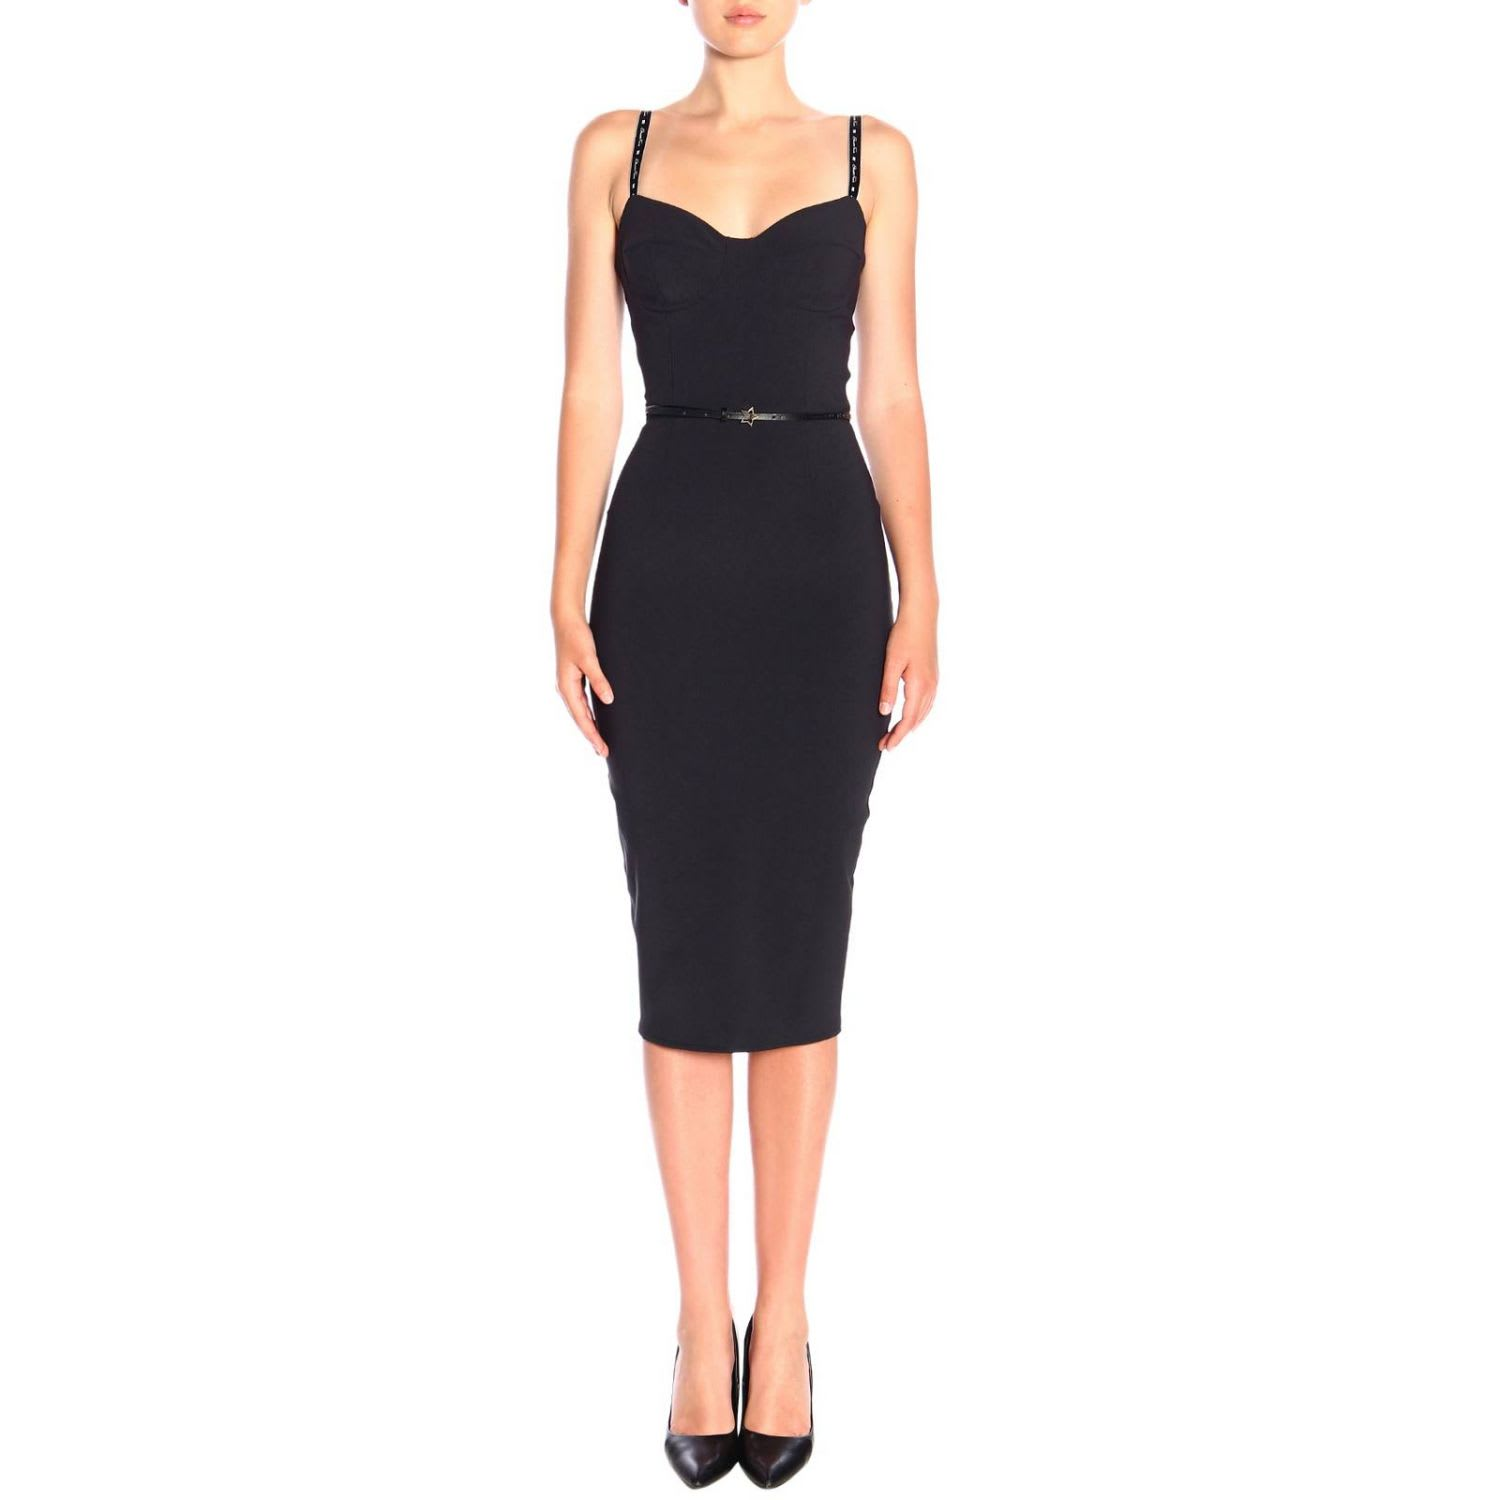 Elisabetta Franchi Dress Elisabetta Franchi Pencil Dress With Straps And Belt